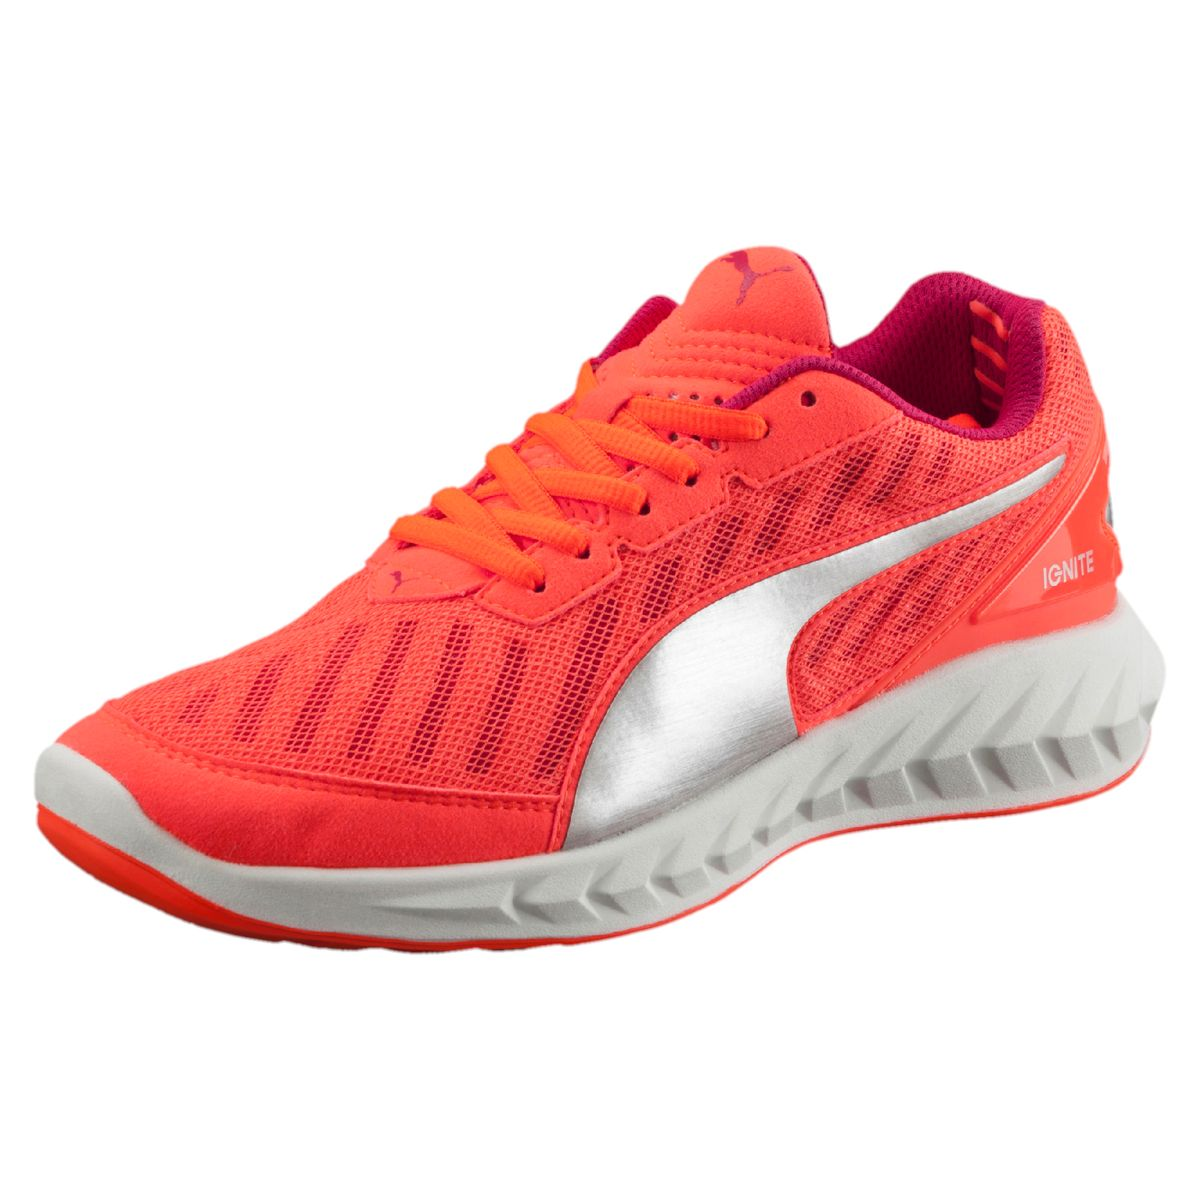 puma ignite ultimate ladies running shoes